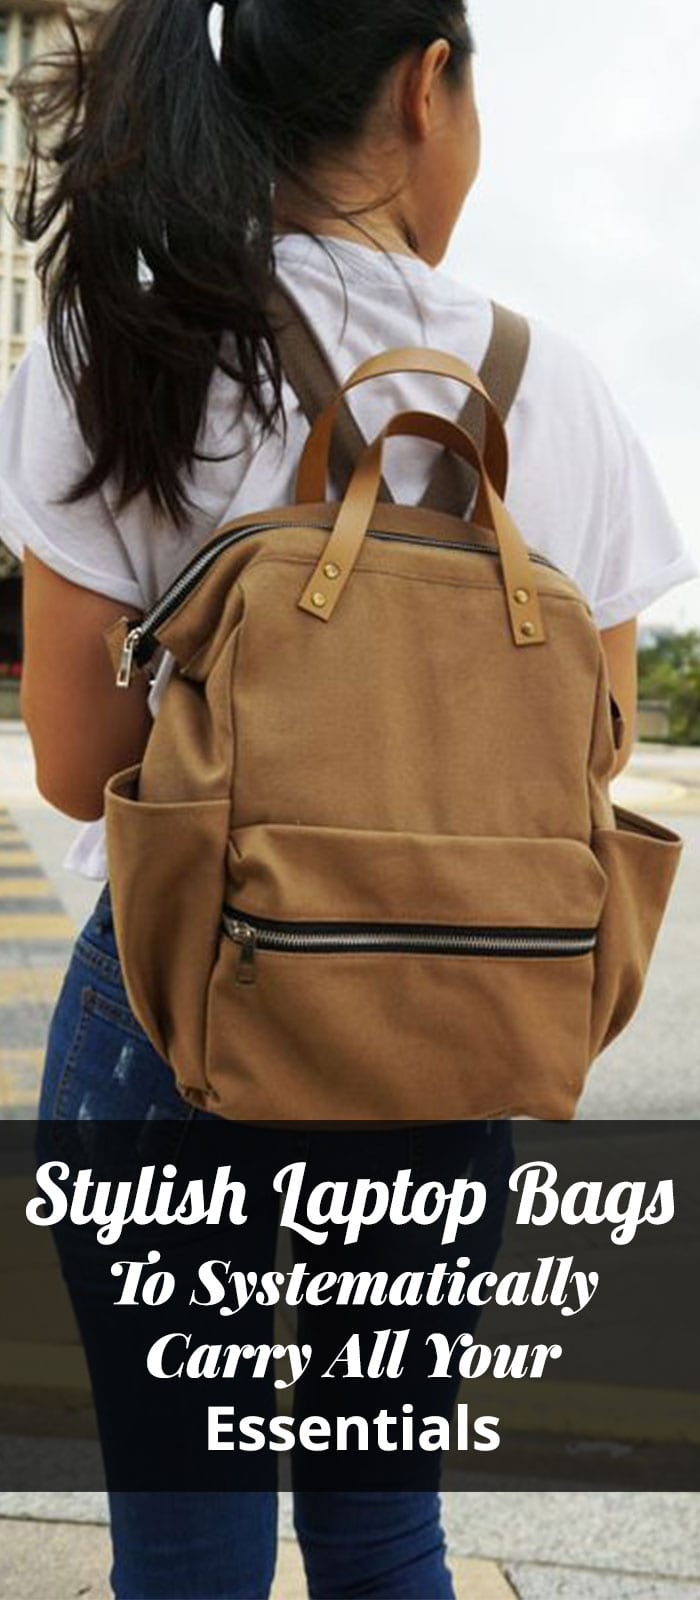 Stylish Laptop Bags To Systematically Carry All Your Essentials